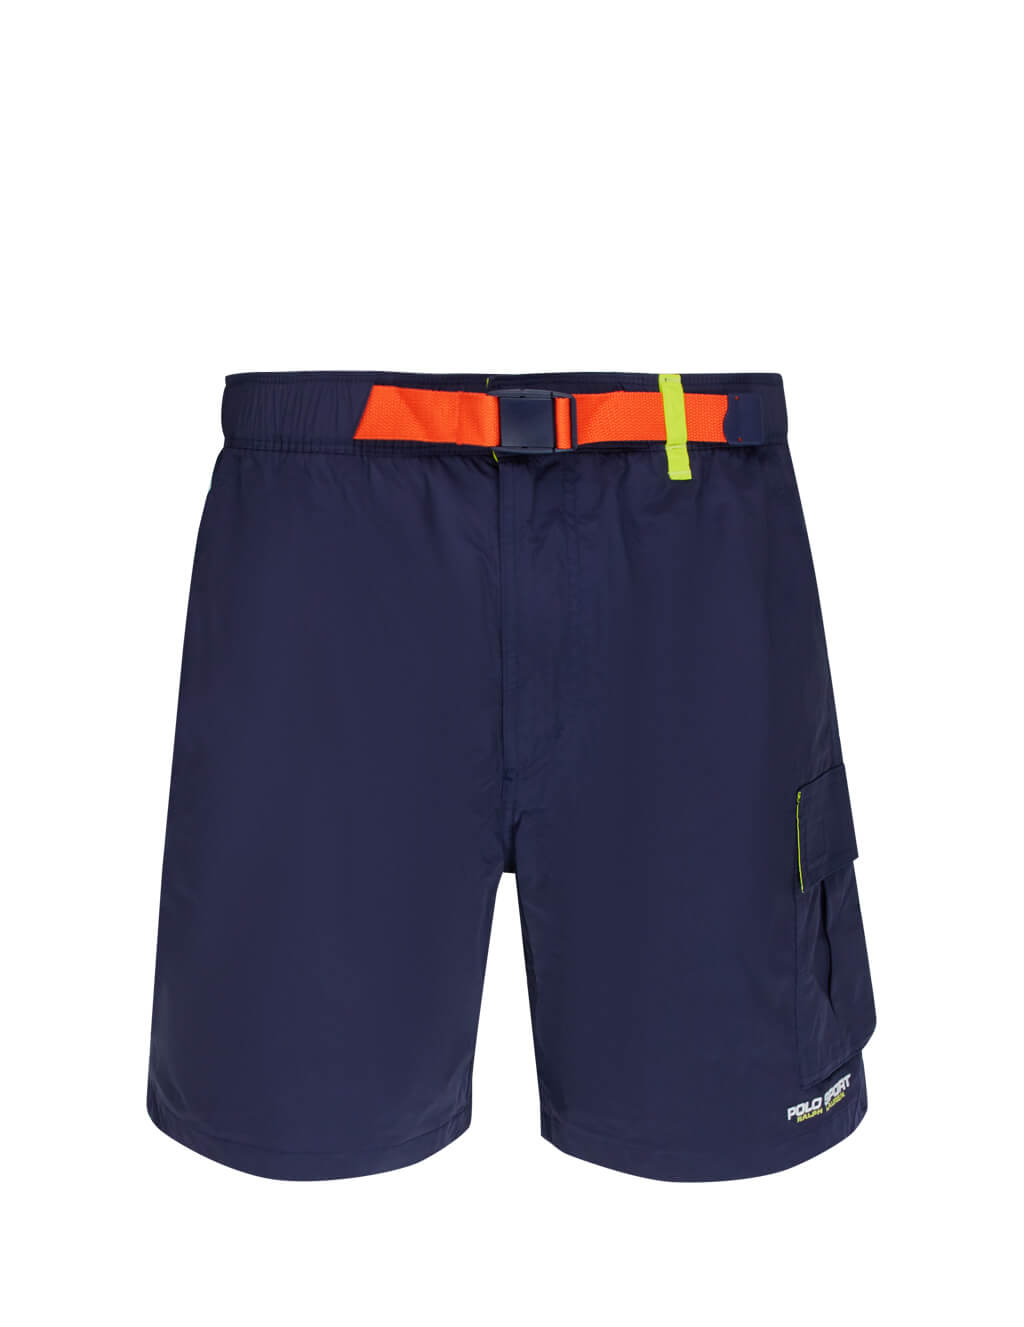 Polo Ralph Lauren Men's Newport Navy OG Utility Athletic Shorts 710788612001